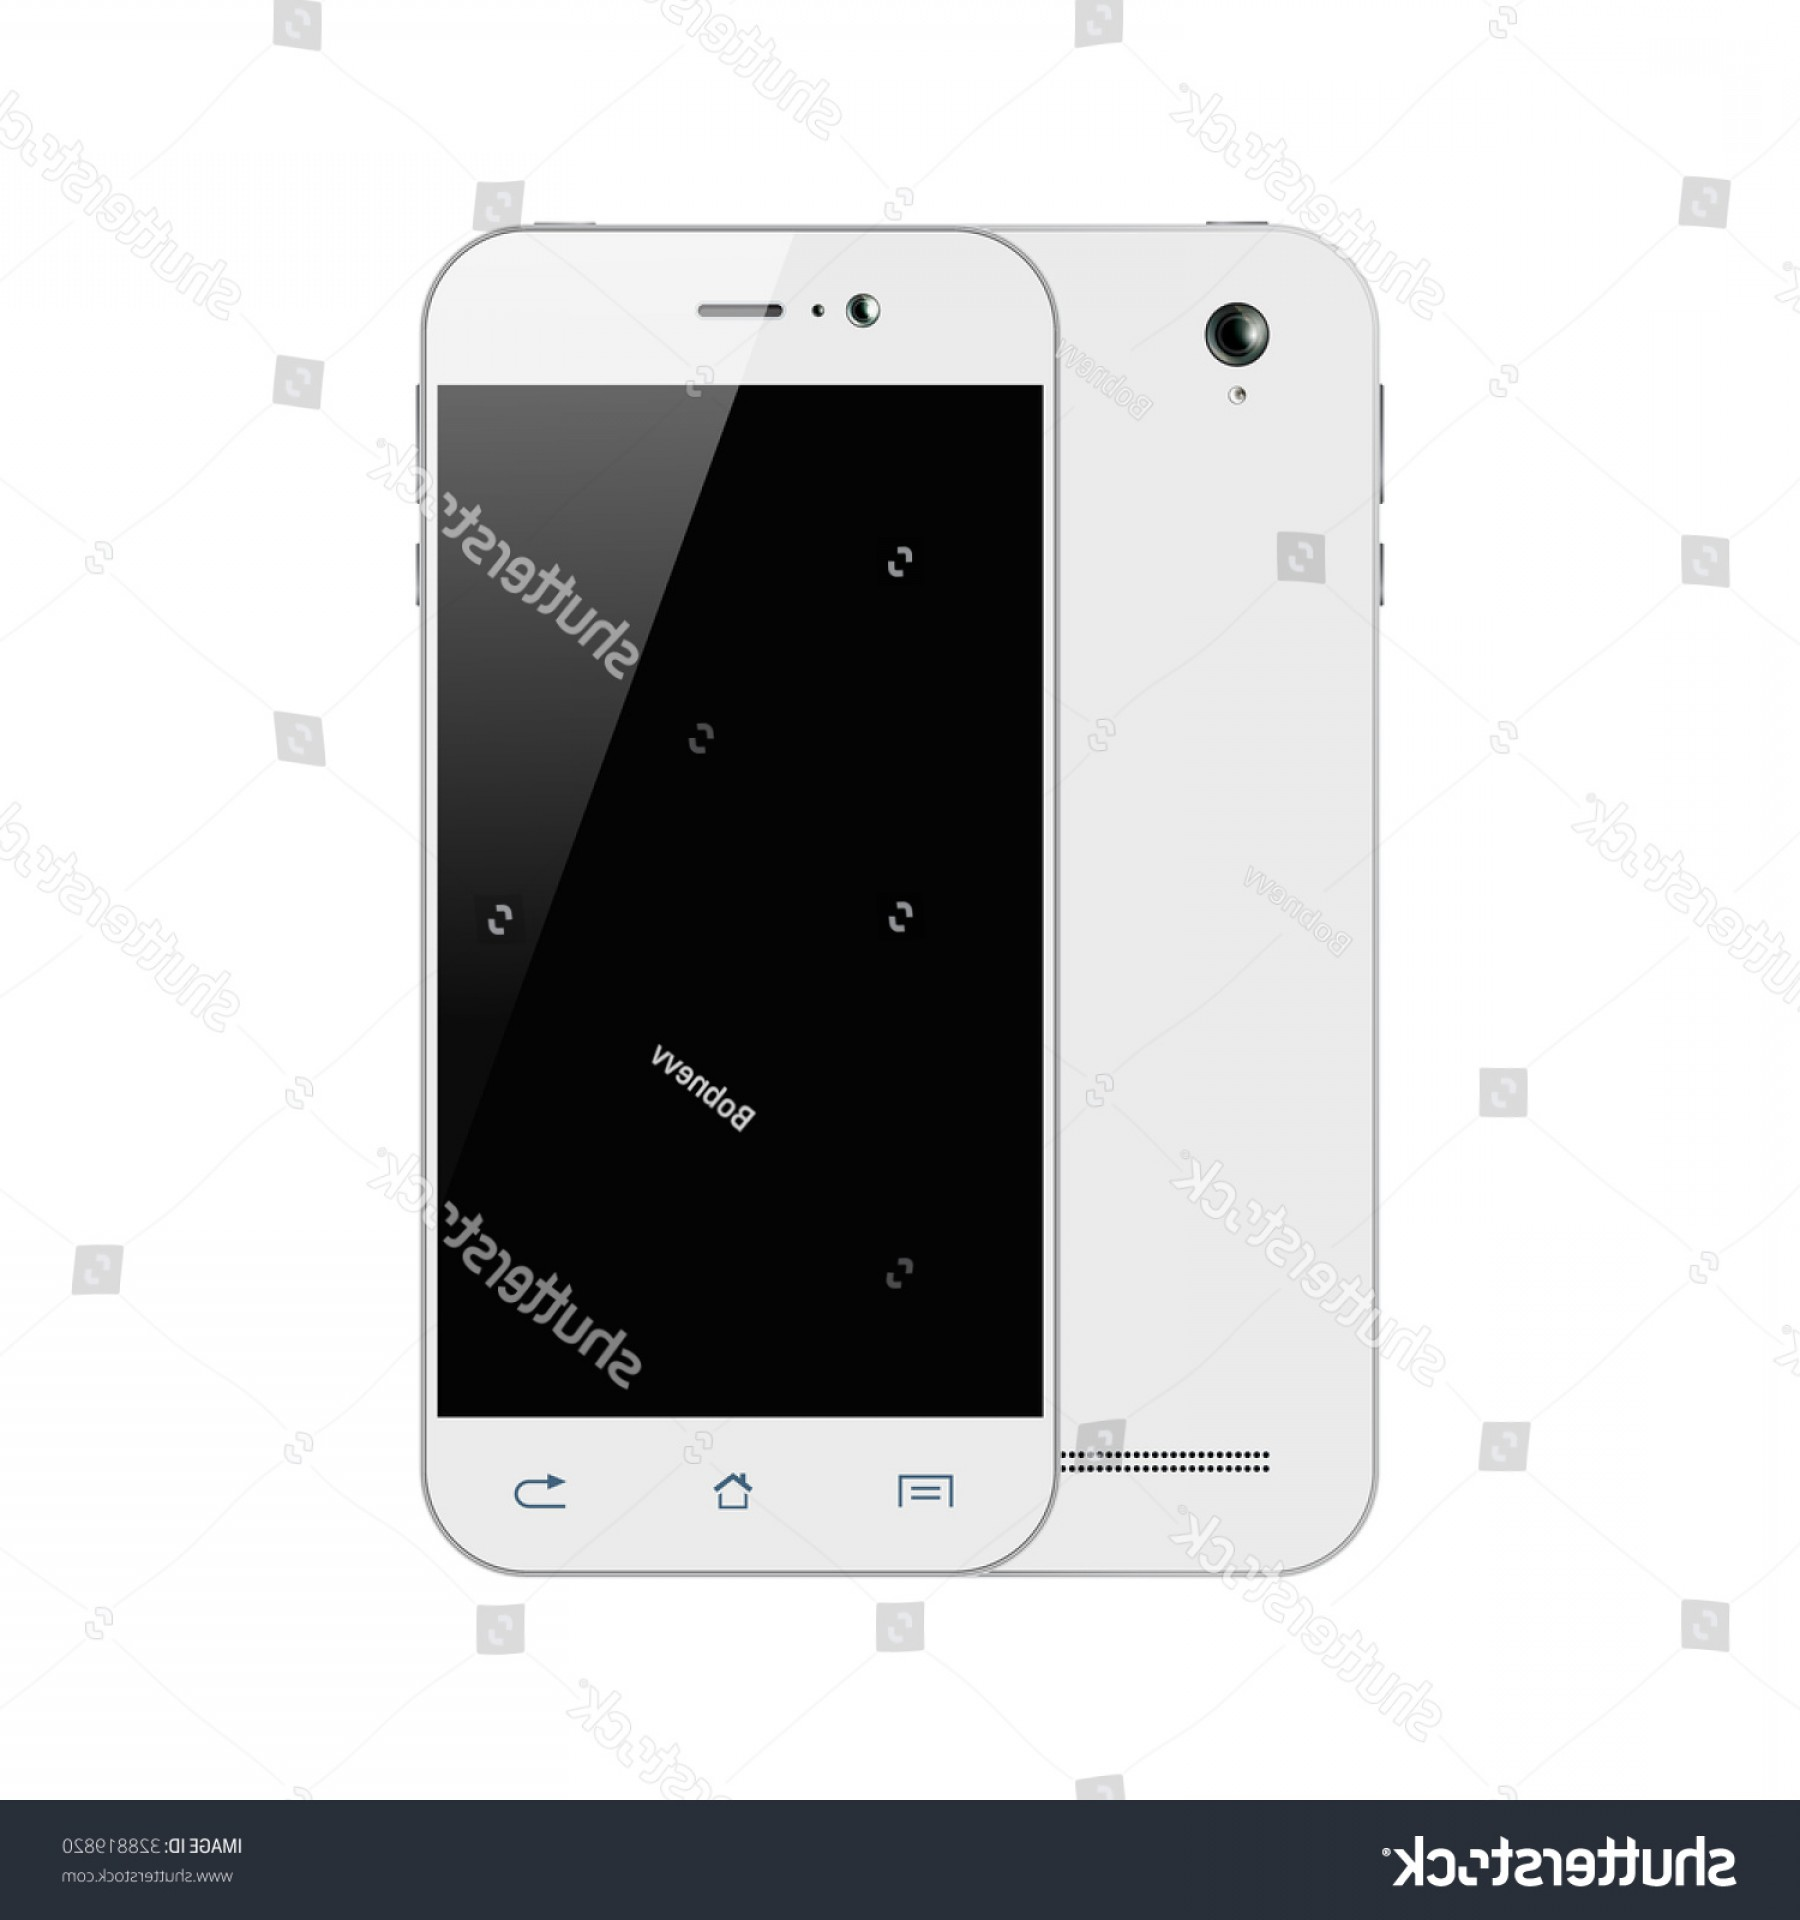 IPhone 8 Vector Front Back: Cute Vector Smart Phones Isolated White Smartphone